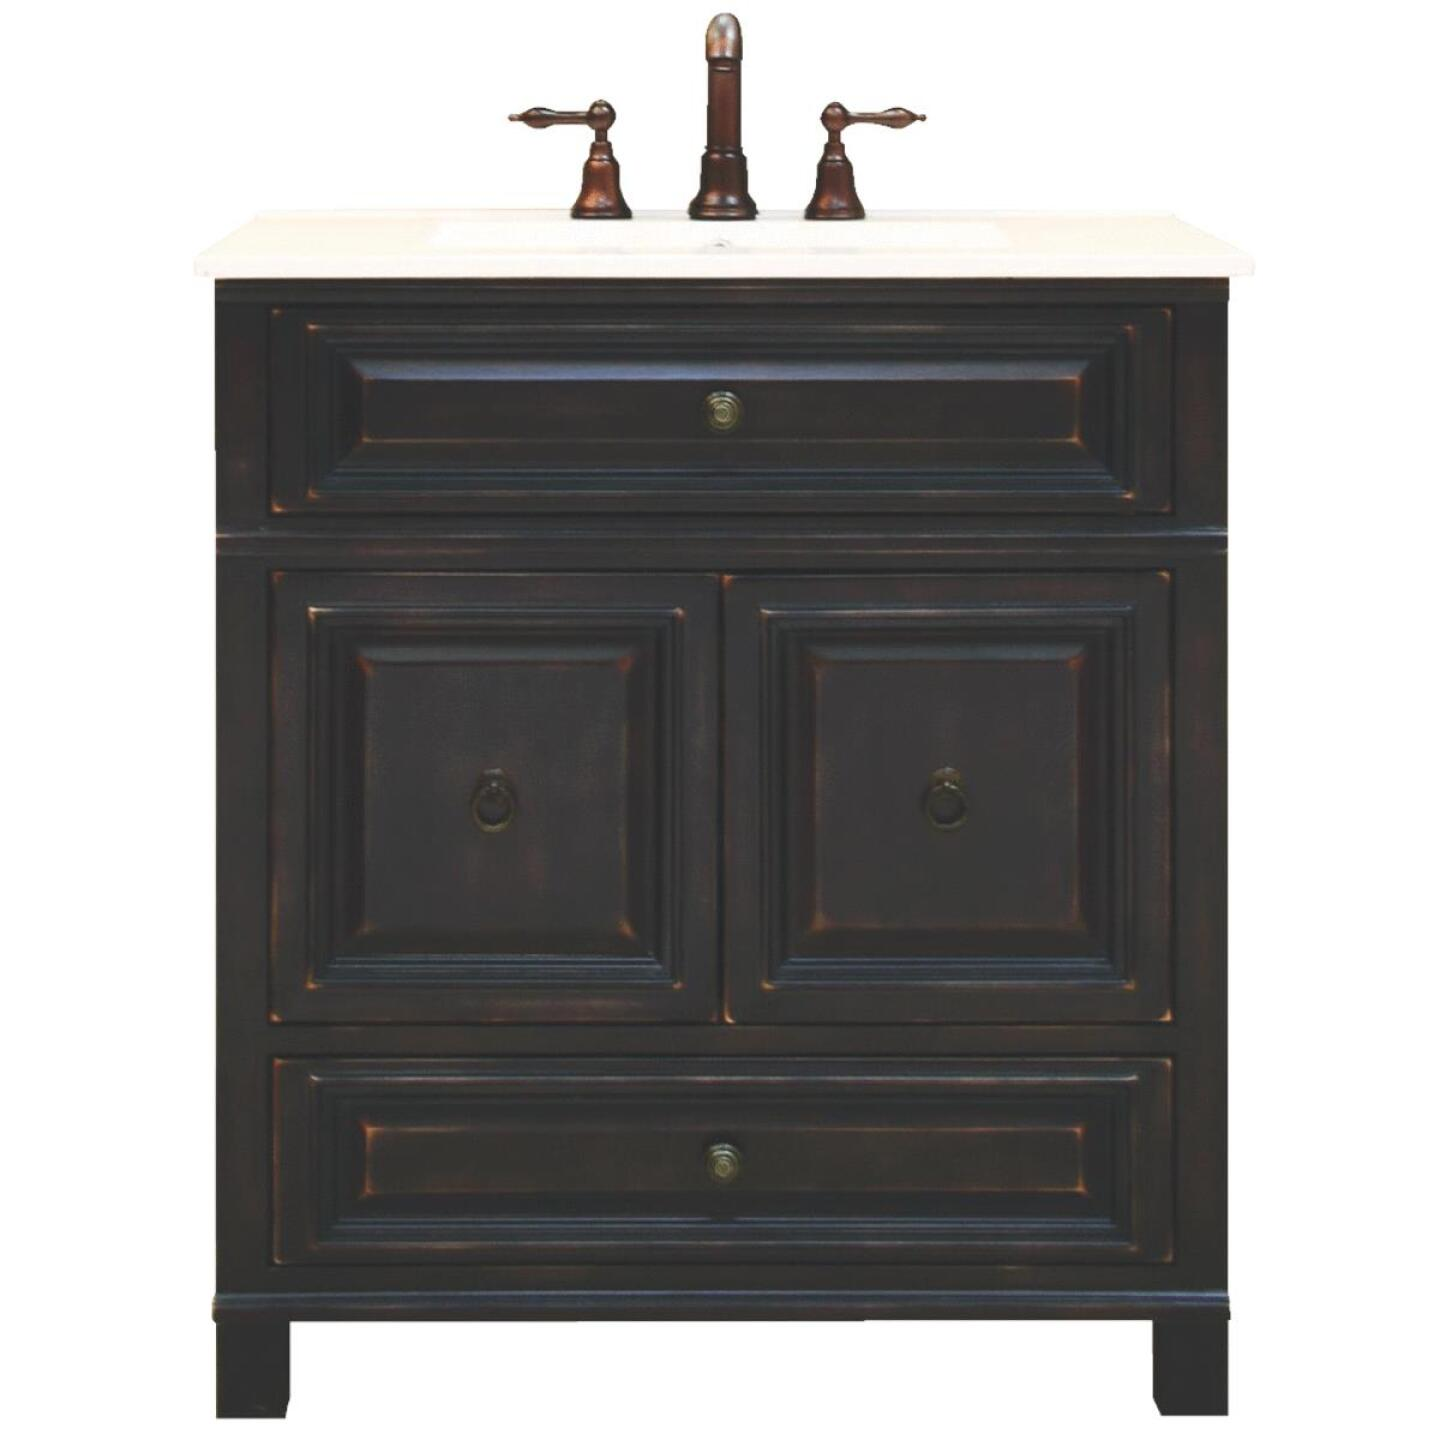 Sunny Wood Barton Hill Black Onyx 30 In. W x 34 In. H x 21 In. D Vanity Base, 2 Door/1 Drawer Image 66